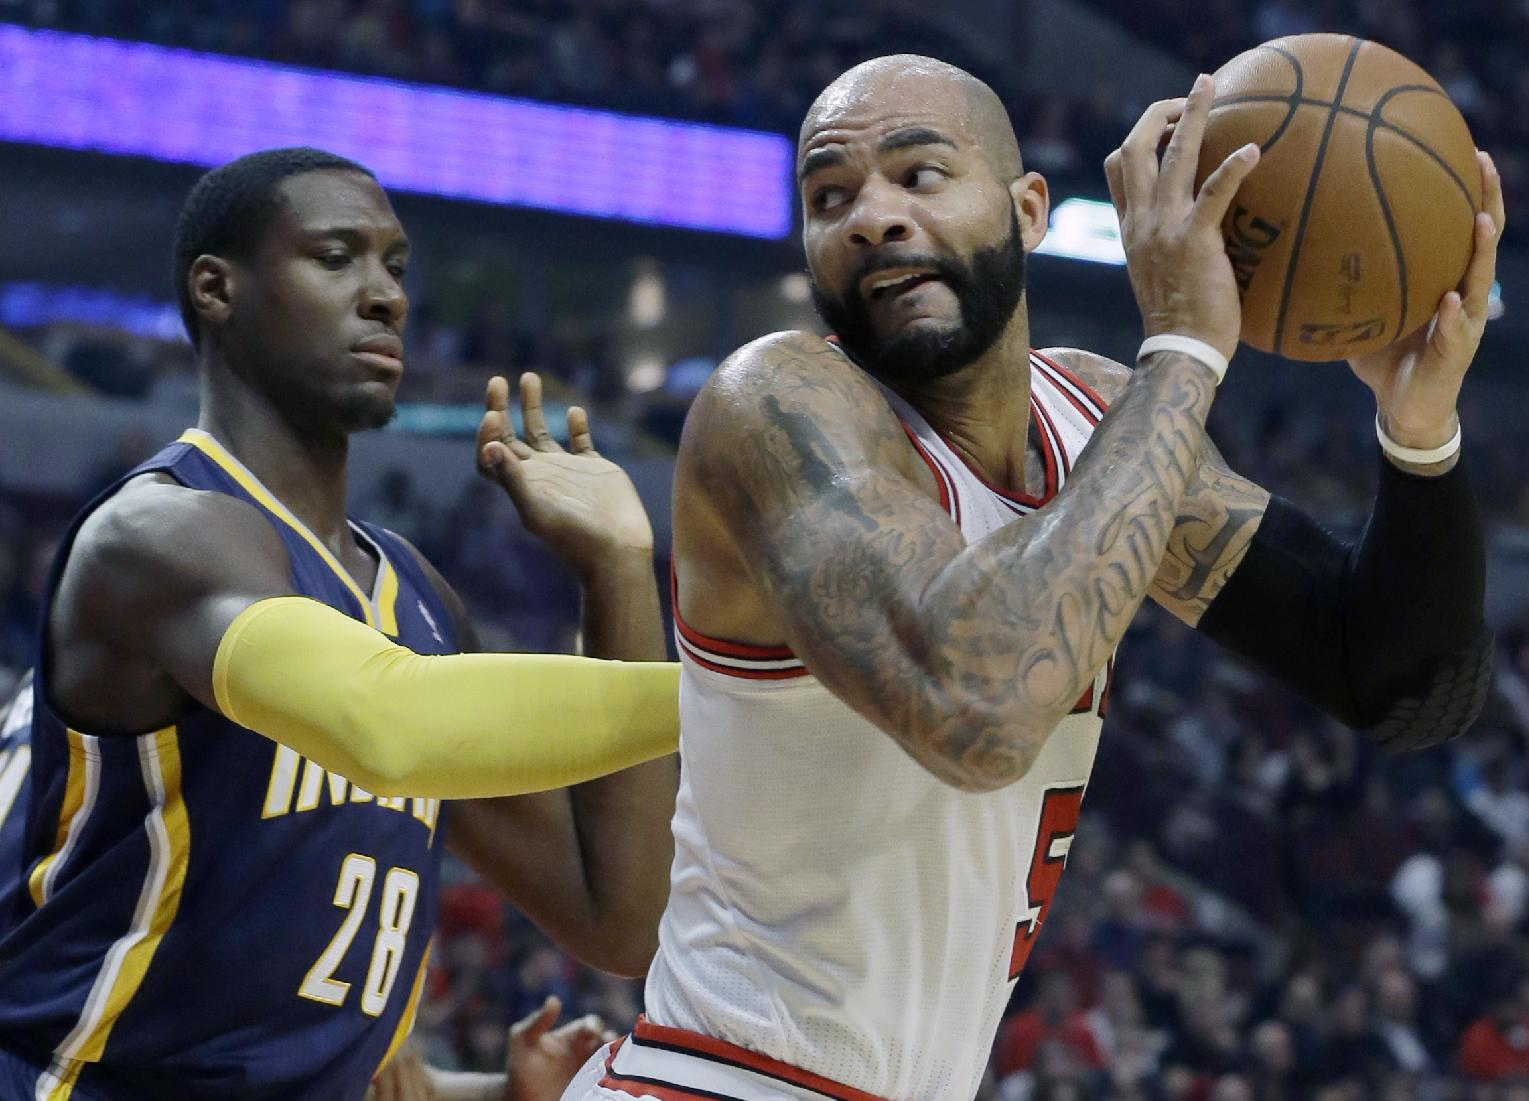 Chicago Bulls forward Carlos Boozer (5) looks to the basket as Indiana Pacers center Ian Mahinmi (28) guards during the first half of an NBA preseason basketball game in Chicago on Friday, Oct. 18, 2013